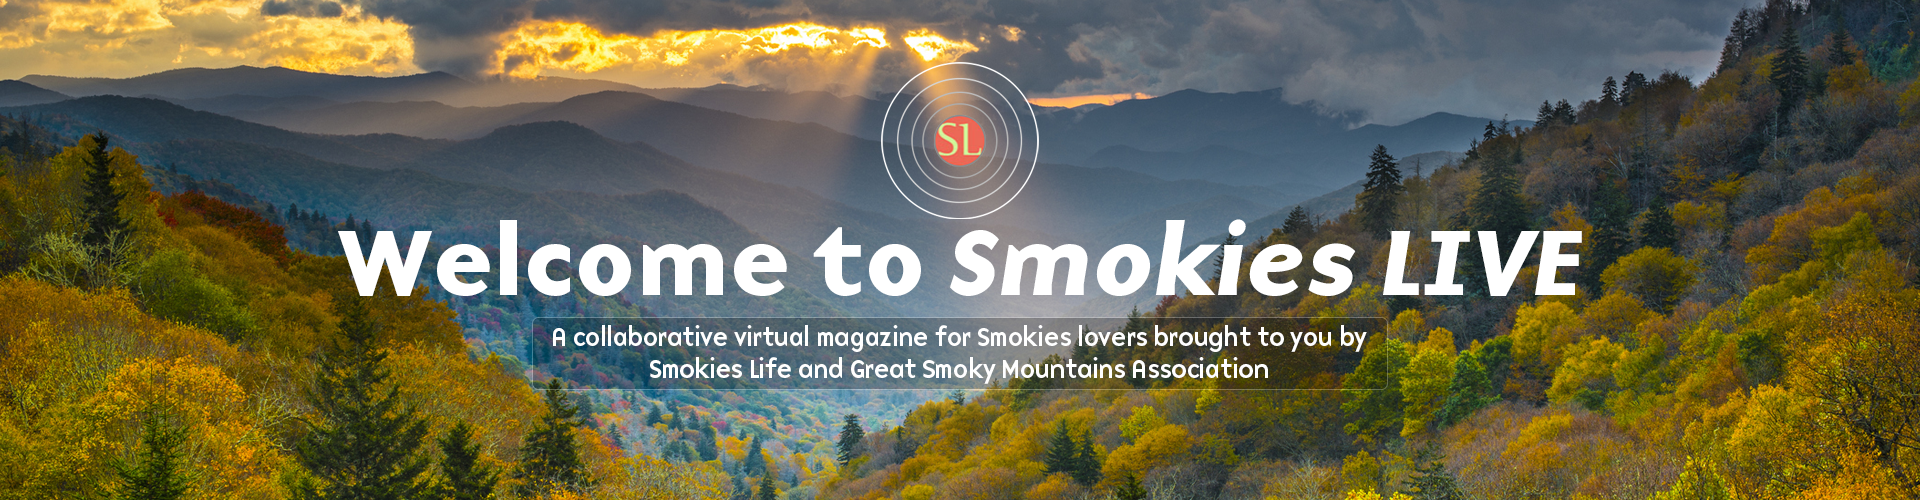 Welcome to Smokies Live - 500px Height